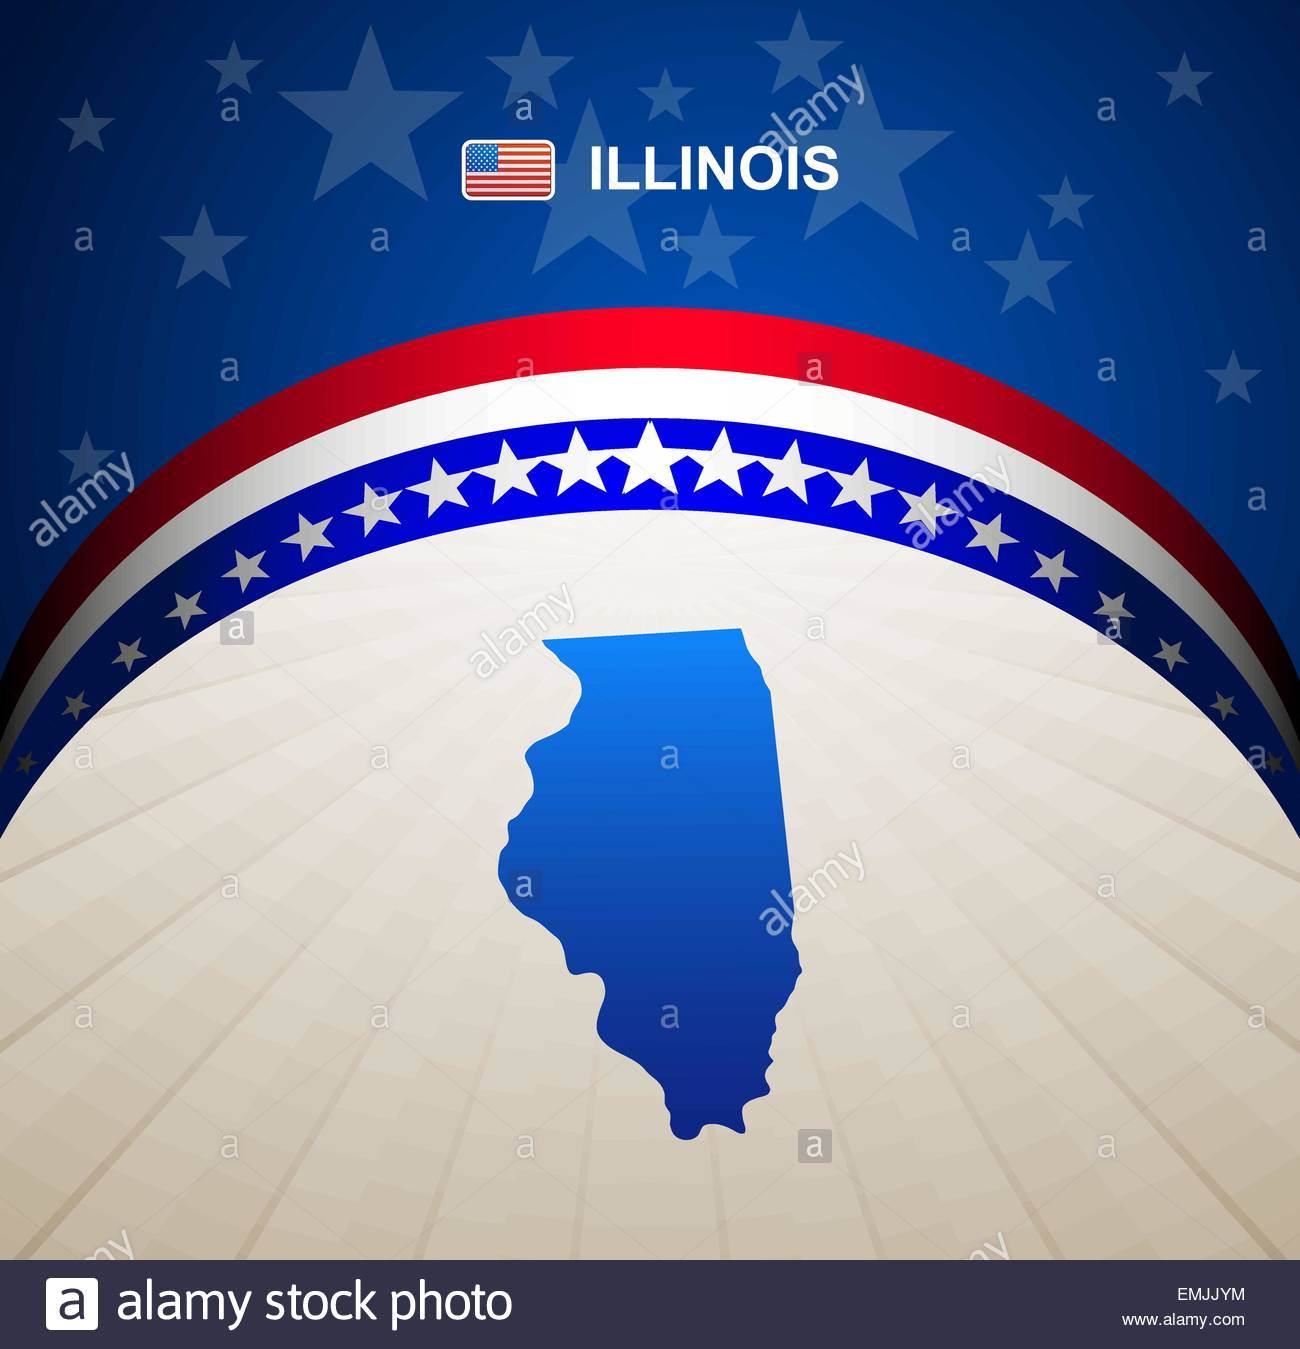 Illinois map vector background - Stock Vector